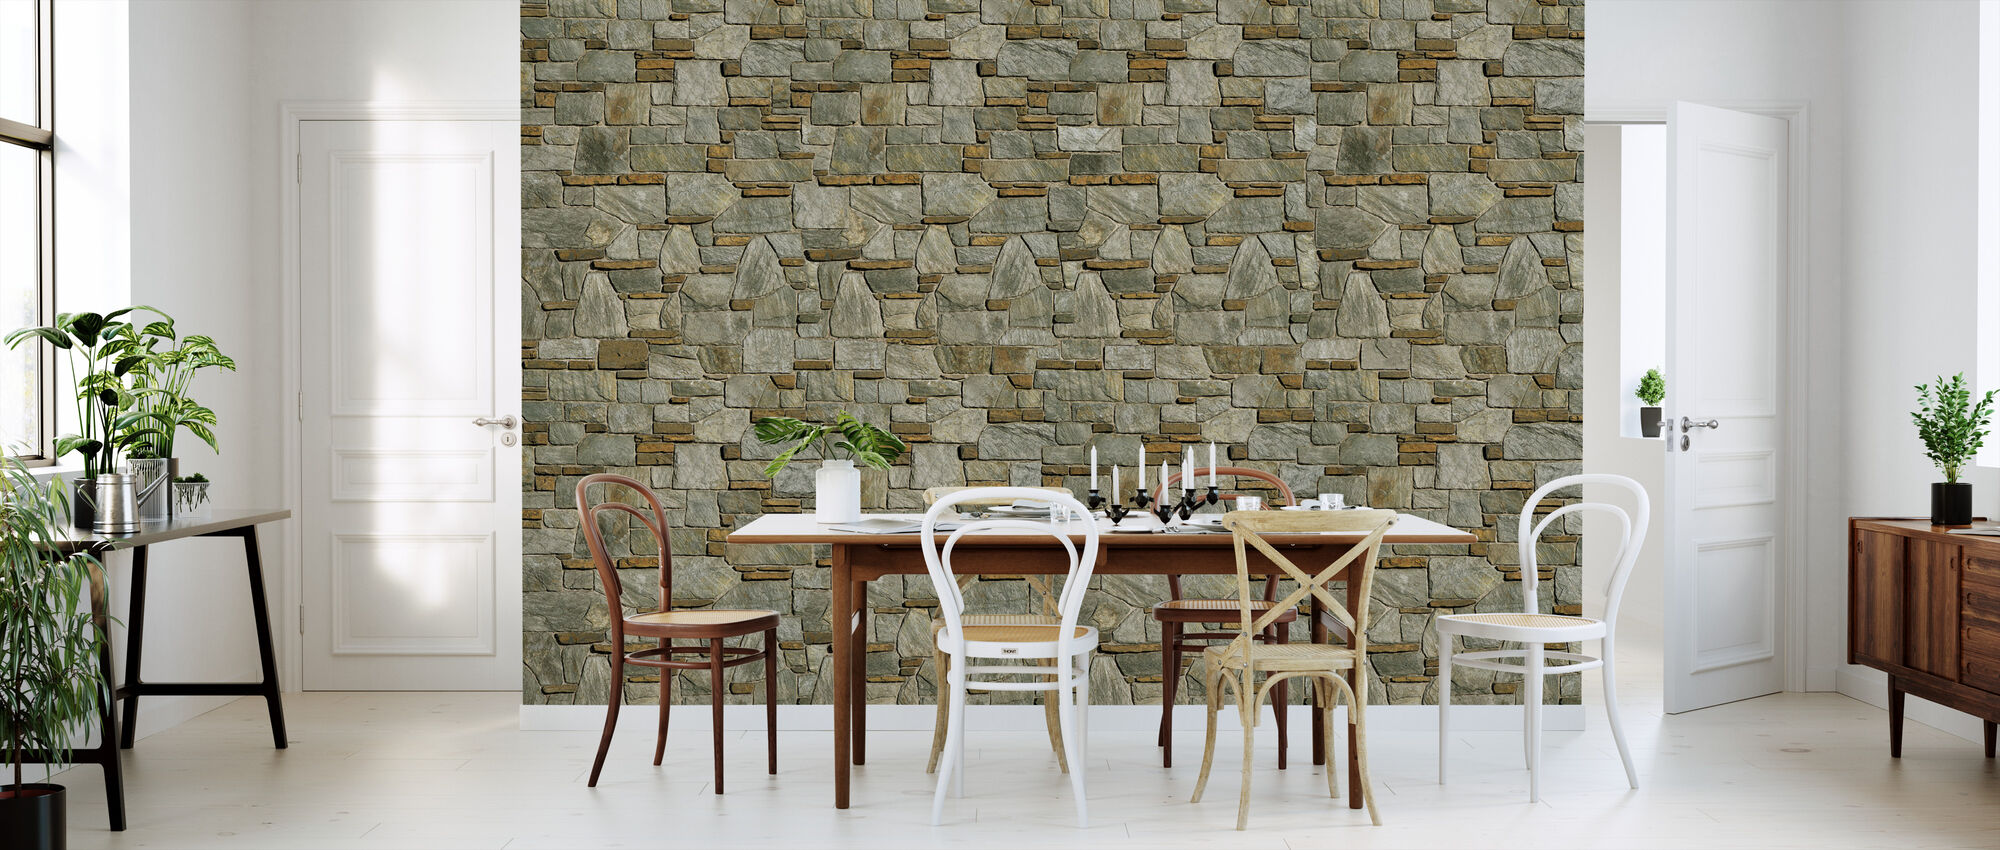 Decorative Stone Wall - Wallpaper - Kitchen